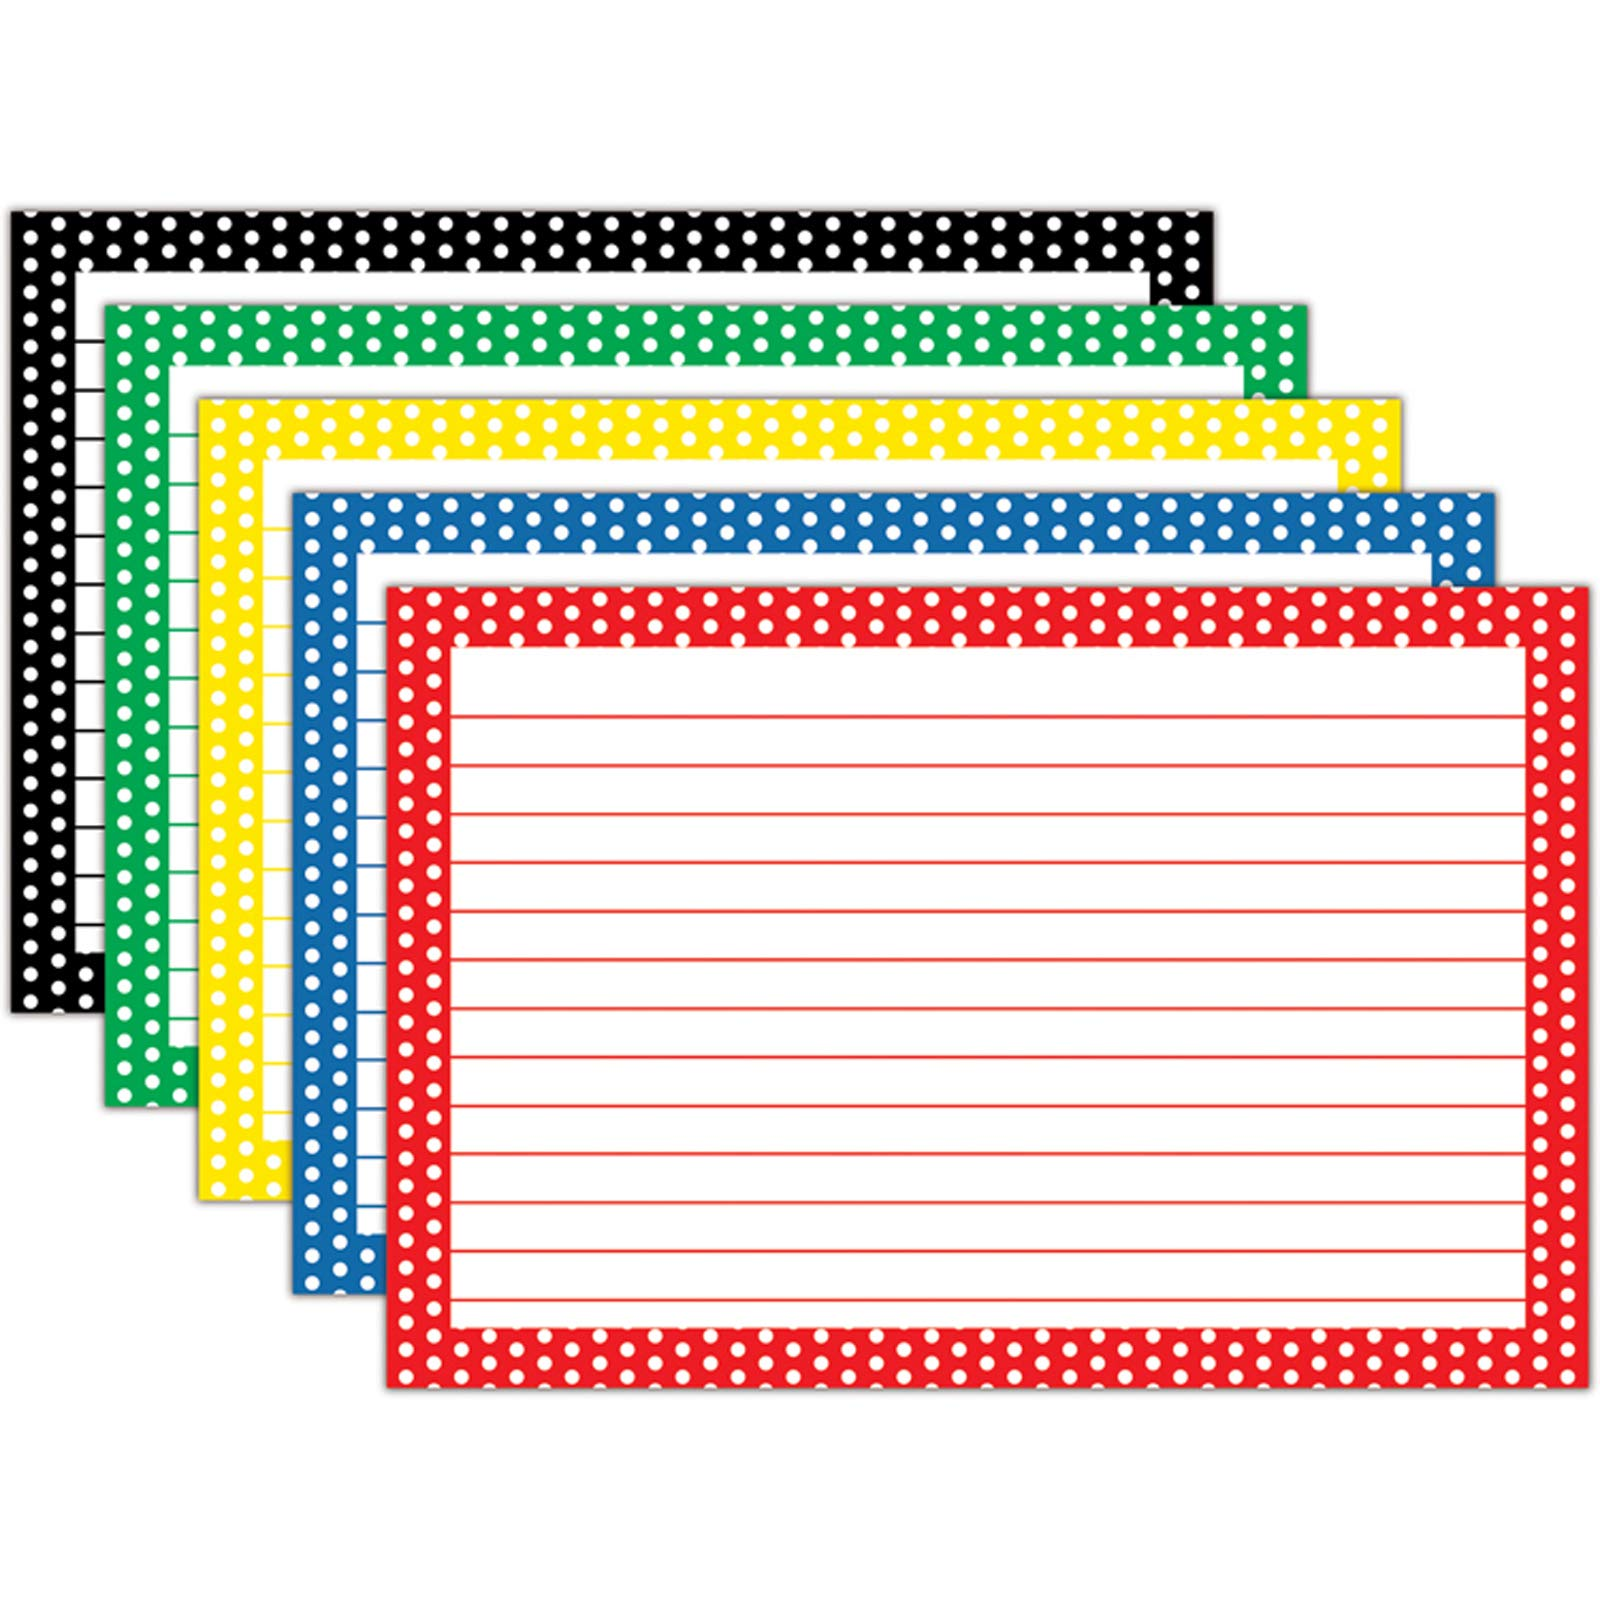 Top Notch Teacher Products TOP3669BN Border Index Cards, 4'' x 6'' Lined, Polka Dot, 75 Per Pack, 12 Packs